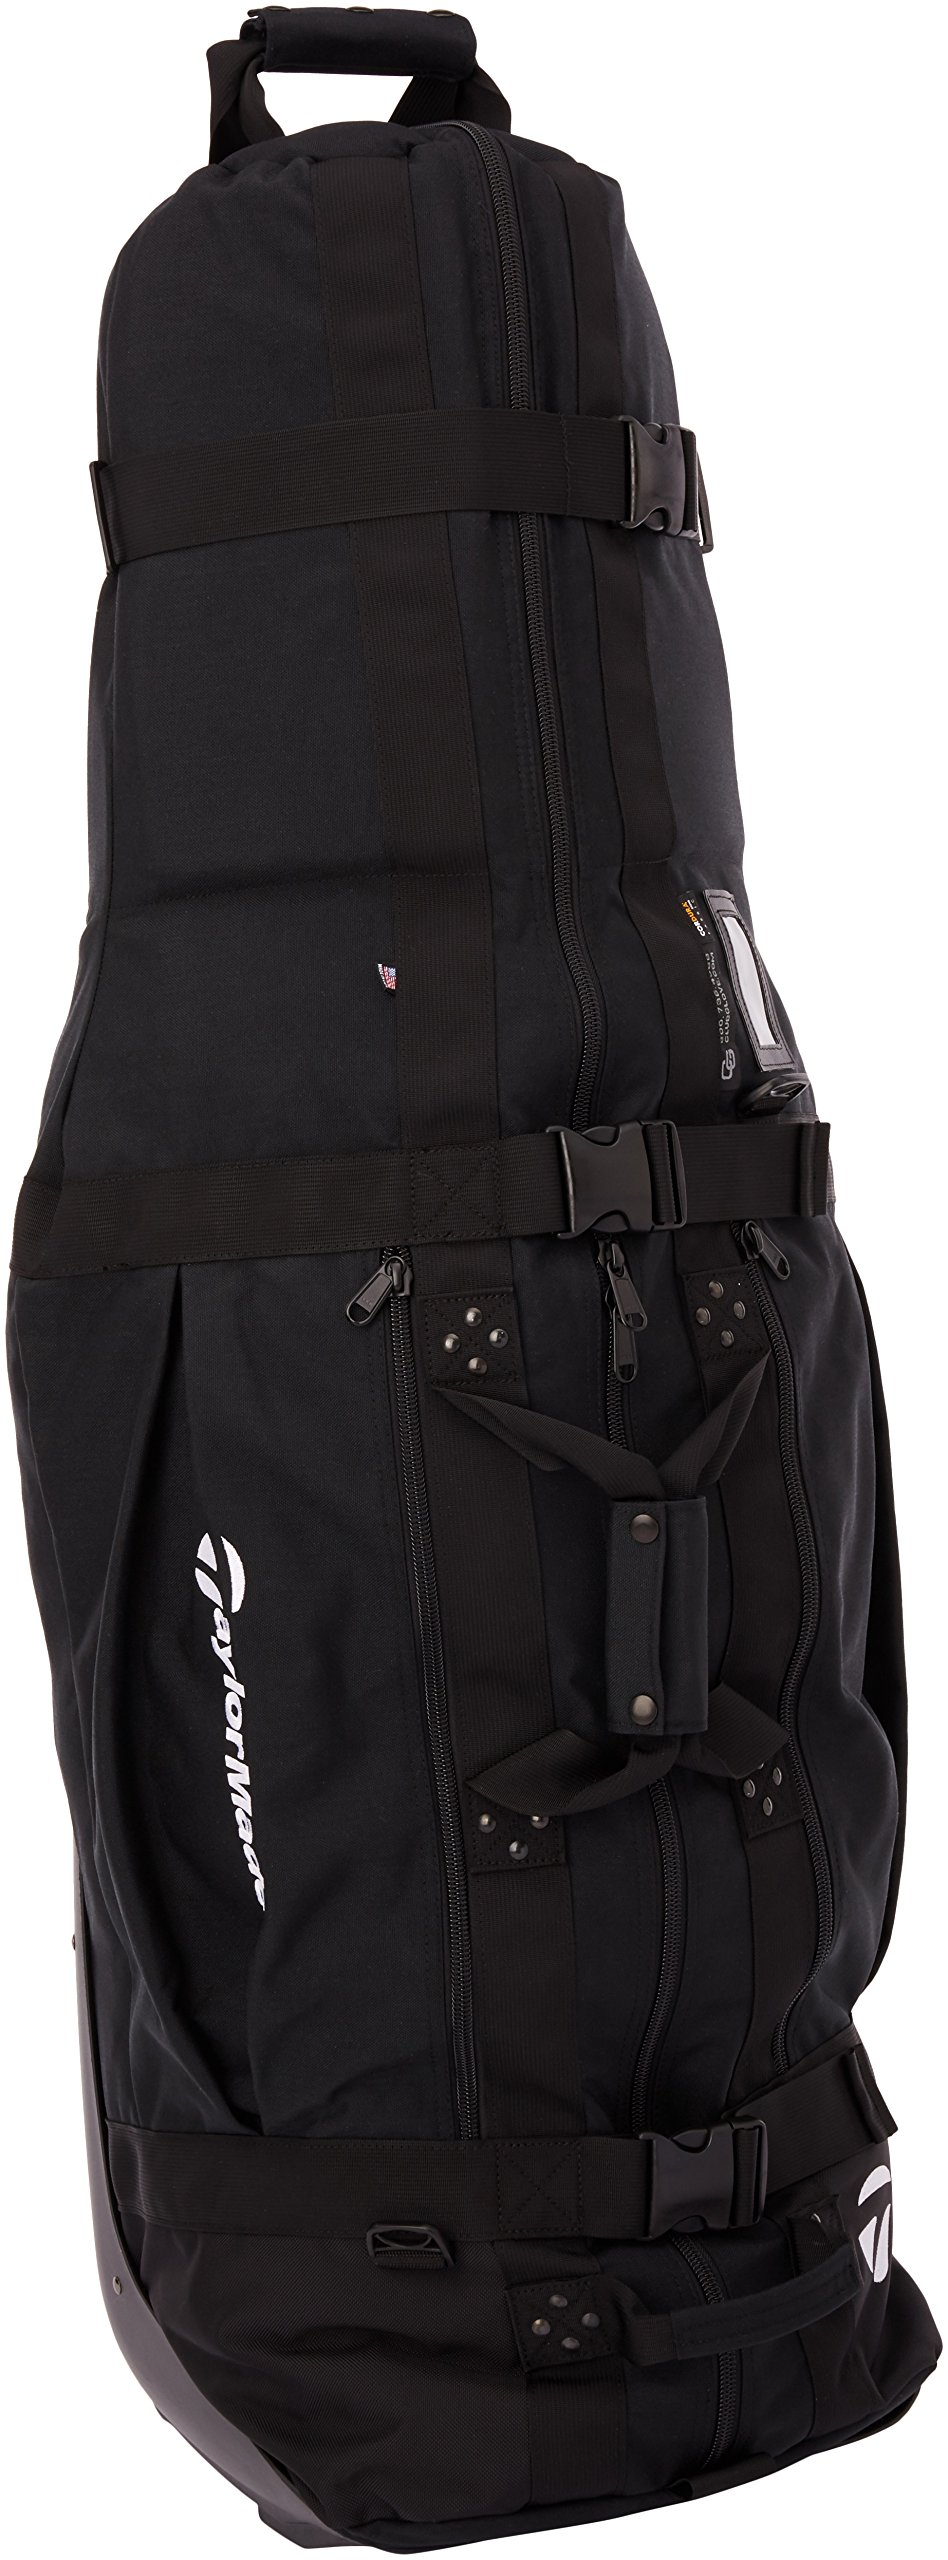 TaylorMade 2013 Players Travel Cover by TaylorMade